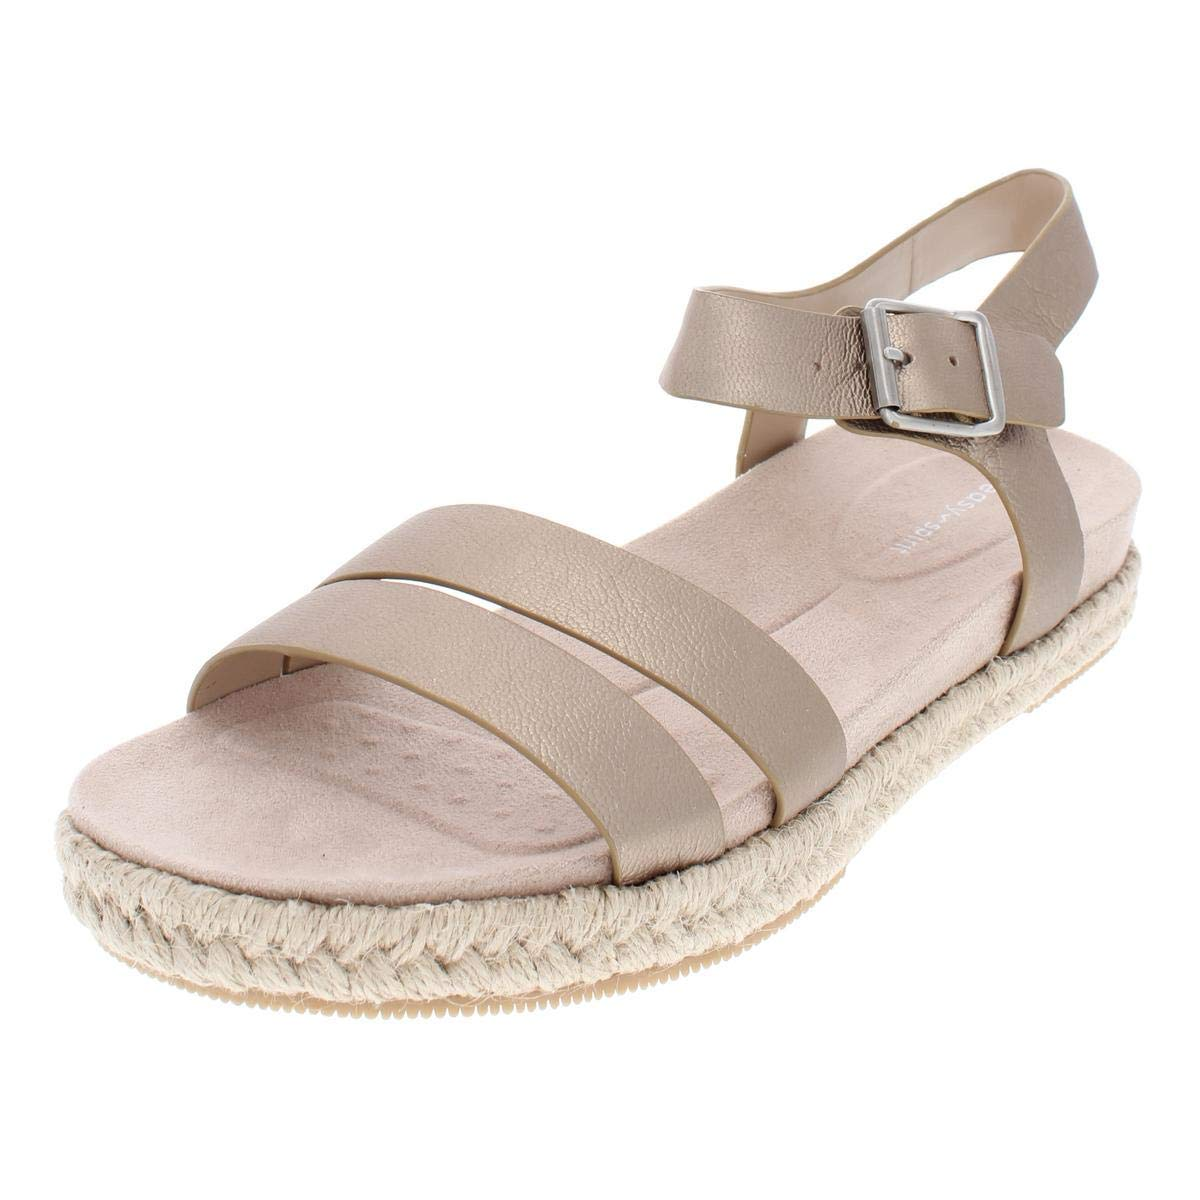 065cabf1d6e2 Details about Easy Spirit Womens Ixia Leather Open Toe Casual Espadrille  Sandals